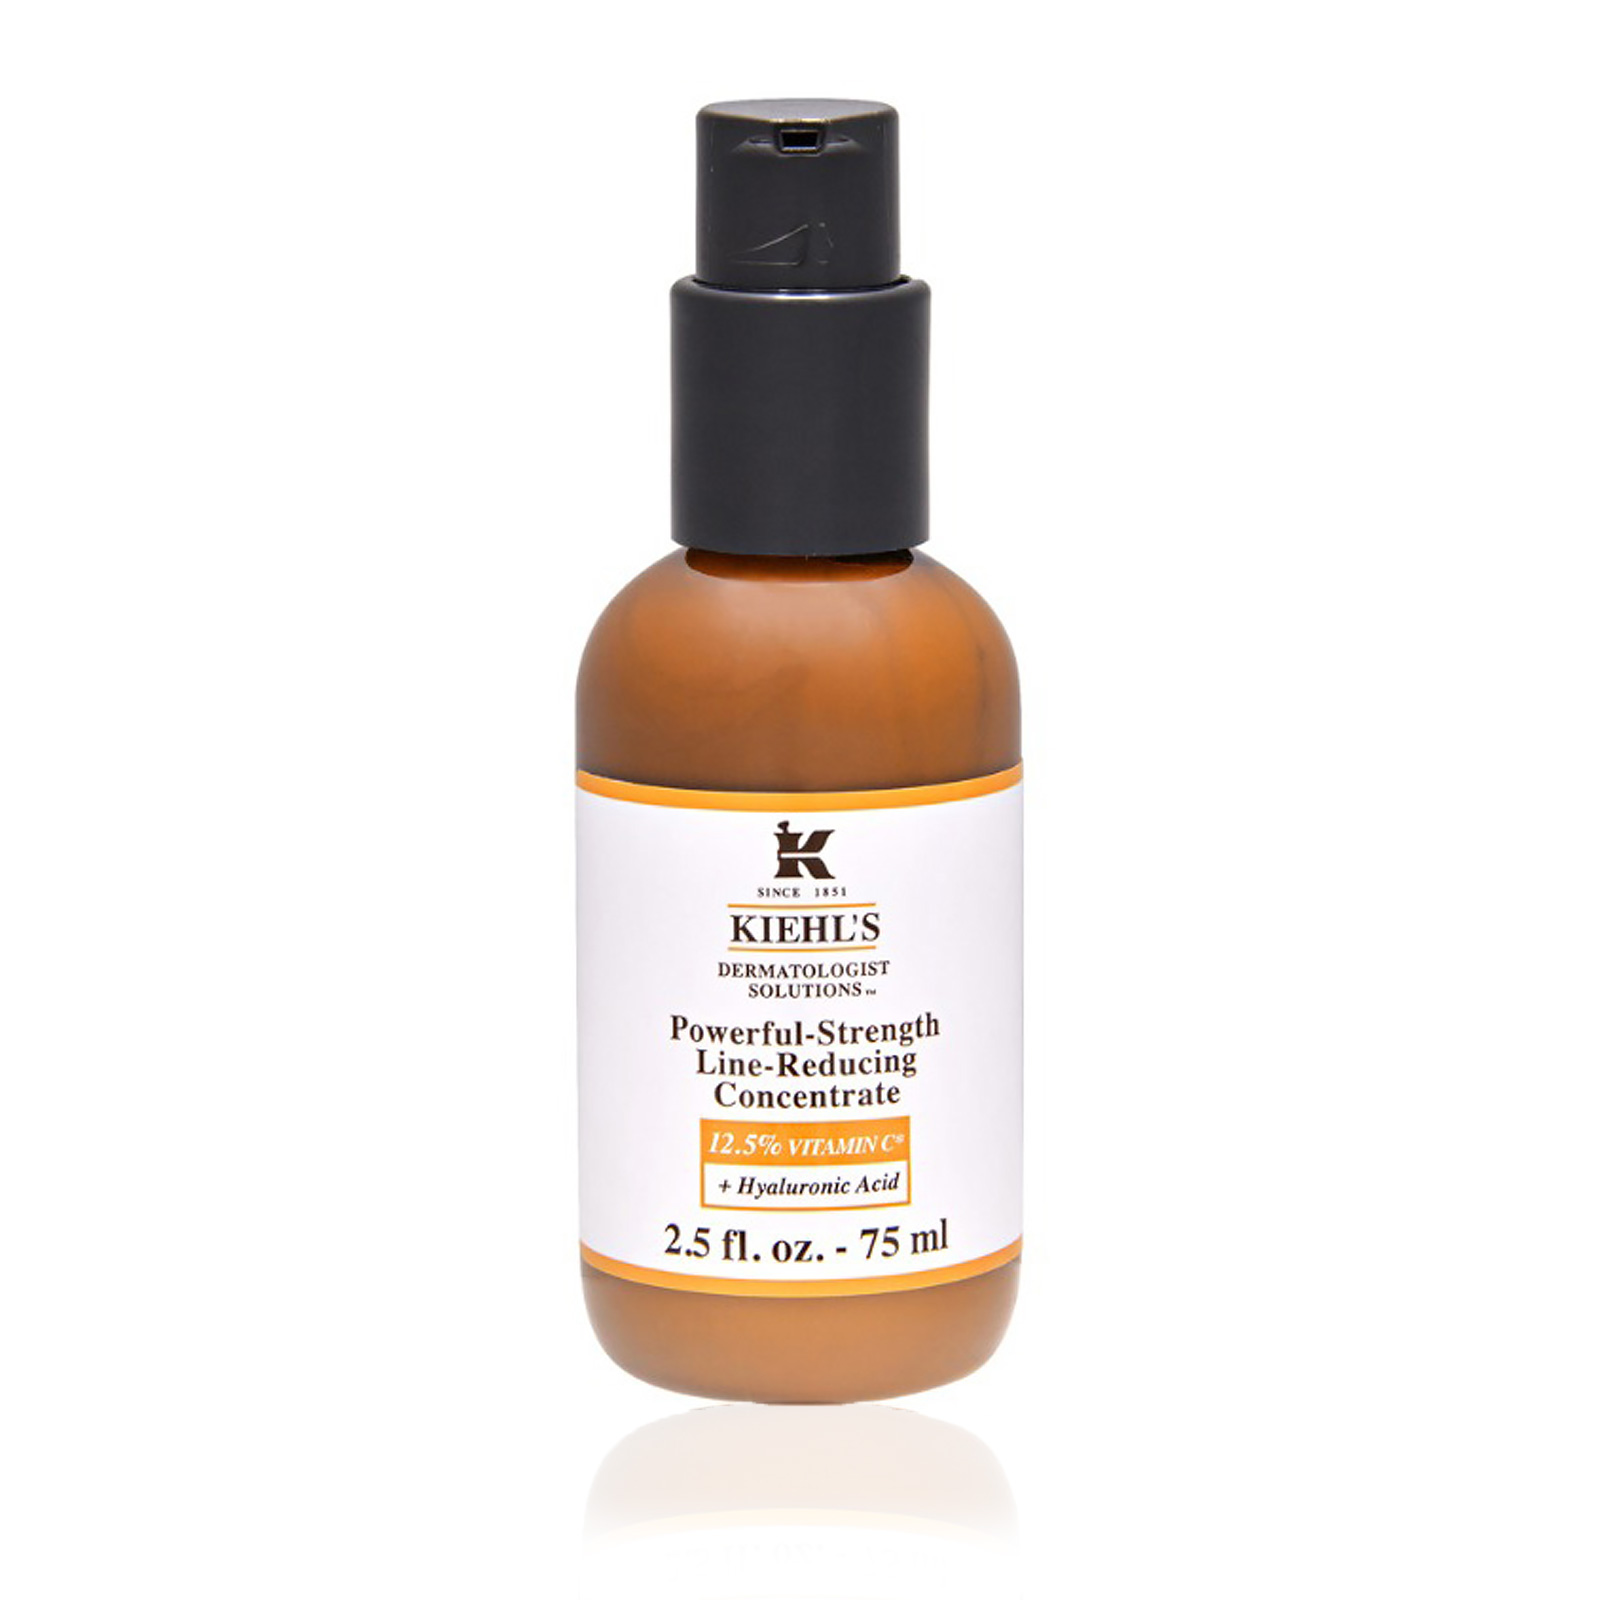 Dermatologist Solutions Powerful-Strength Line-Reducing Concentrate